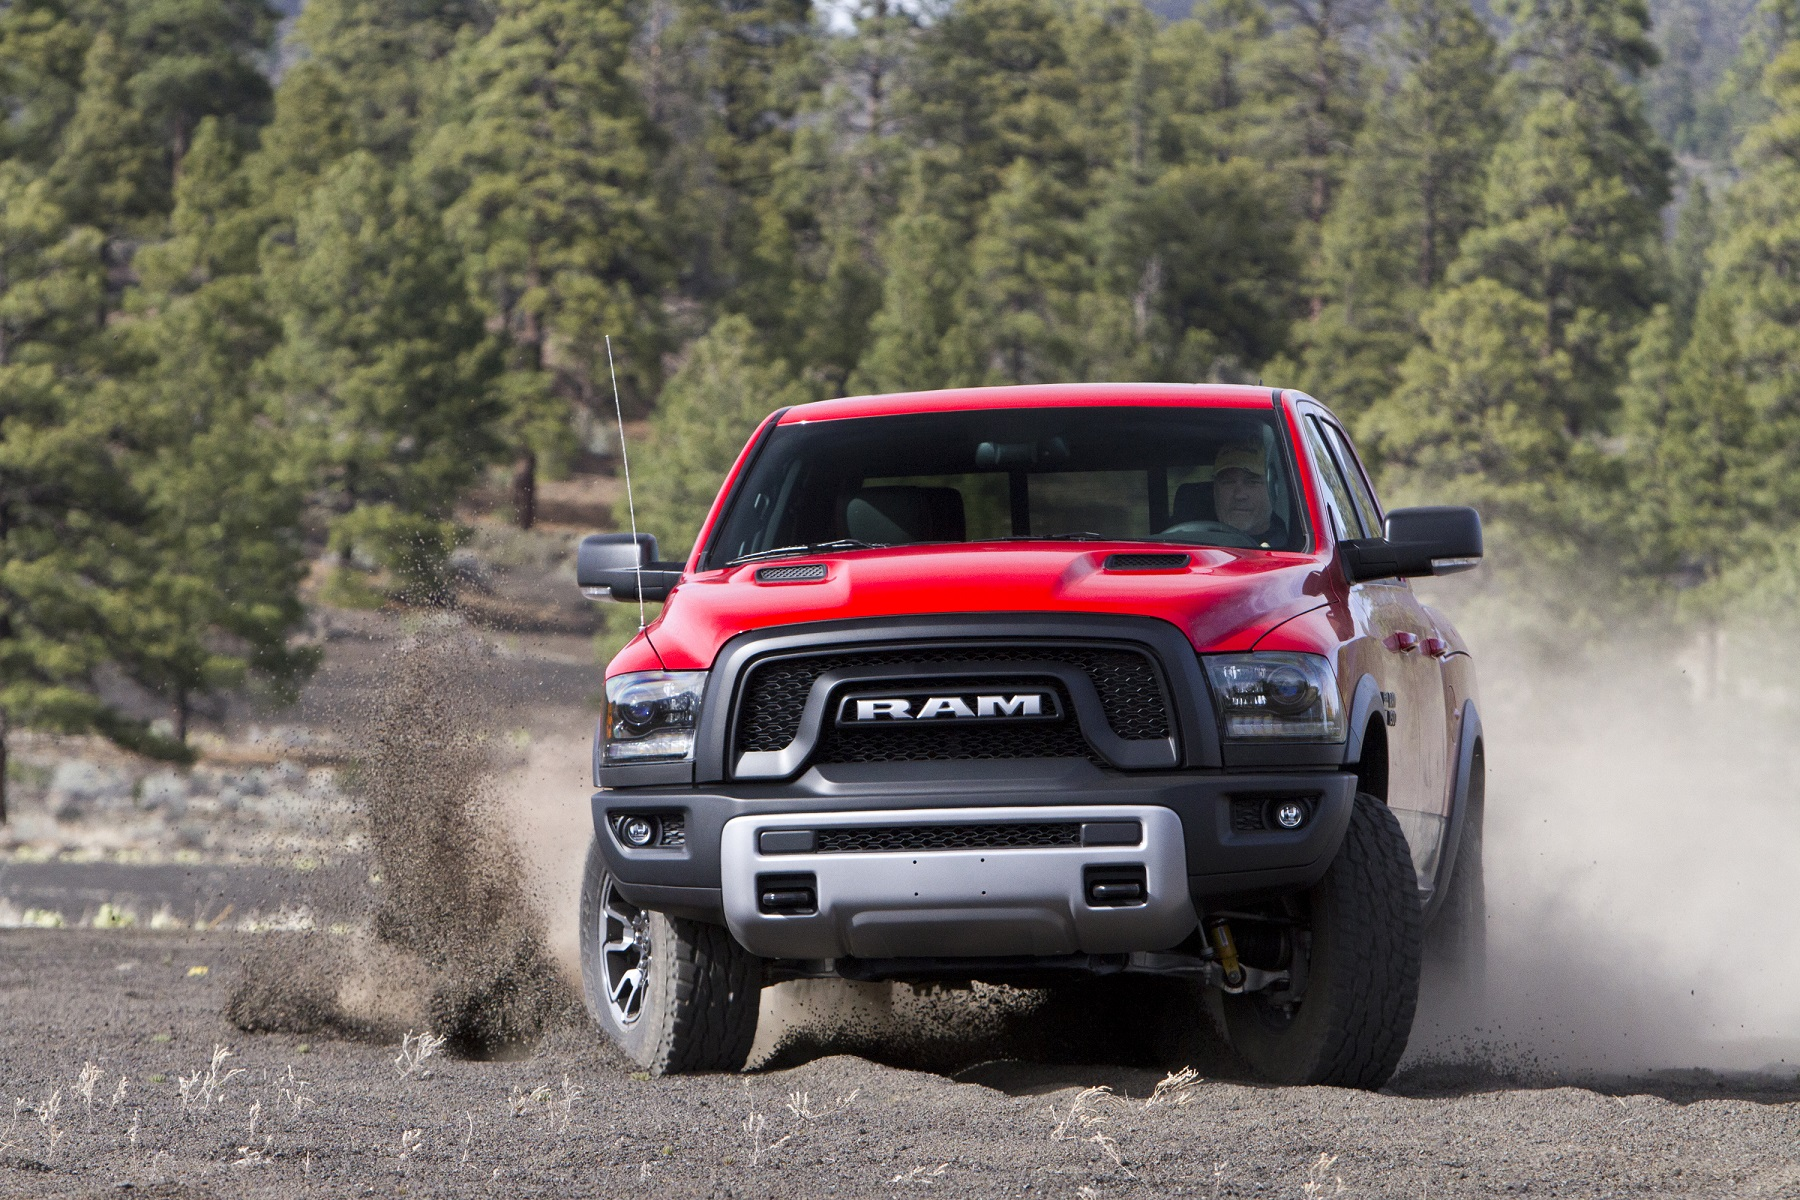 Manufacturer photo: The all-new 2019 Ram 1500 is available in a wide range of offerings, from the well-equipped Tradesman Quad Cab 4x2